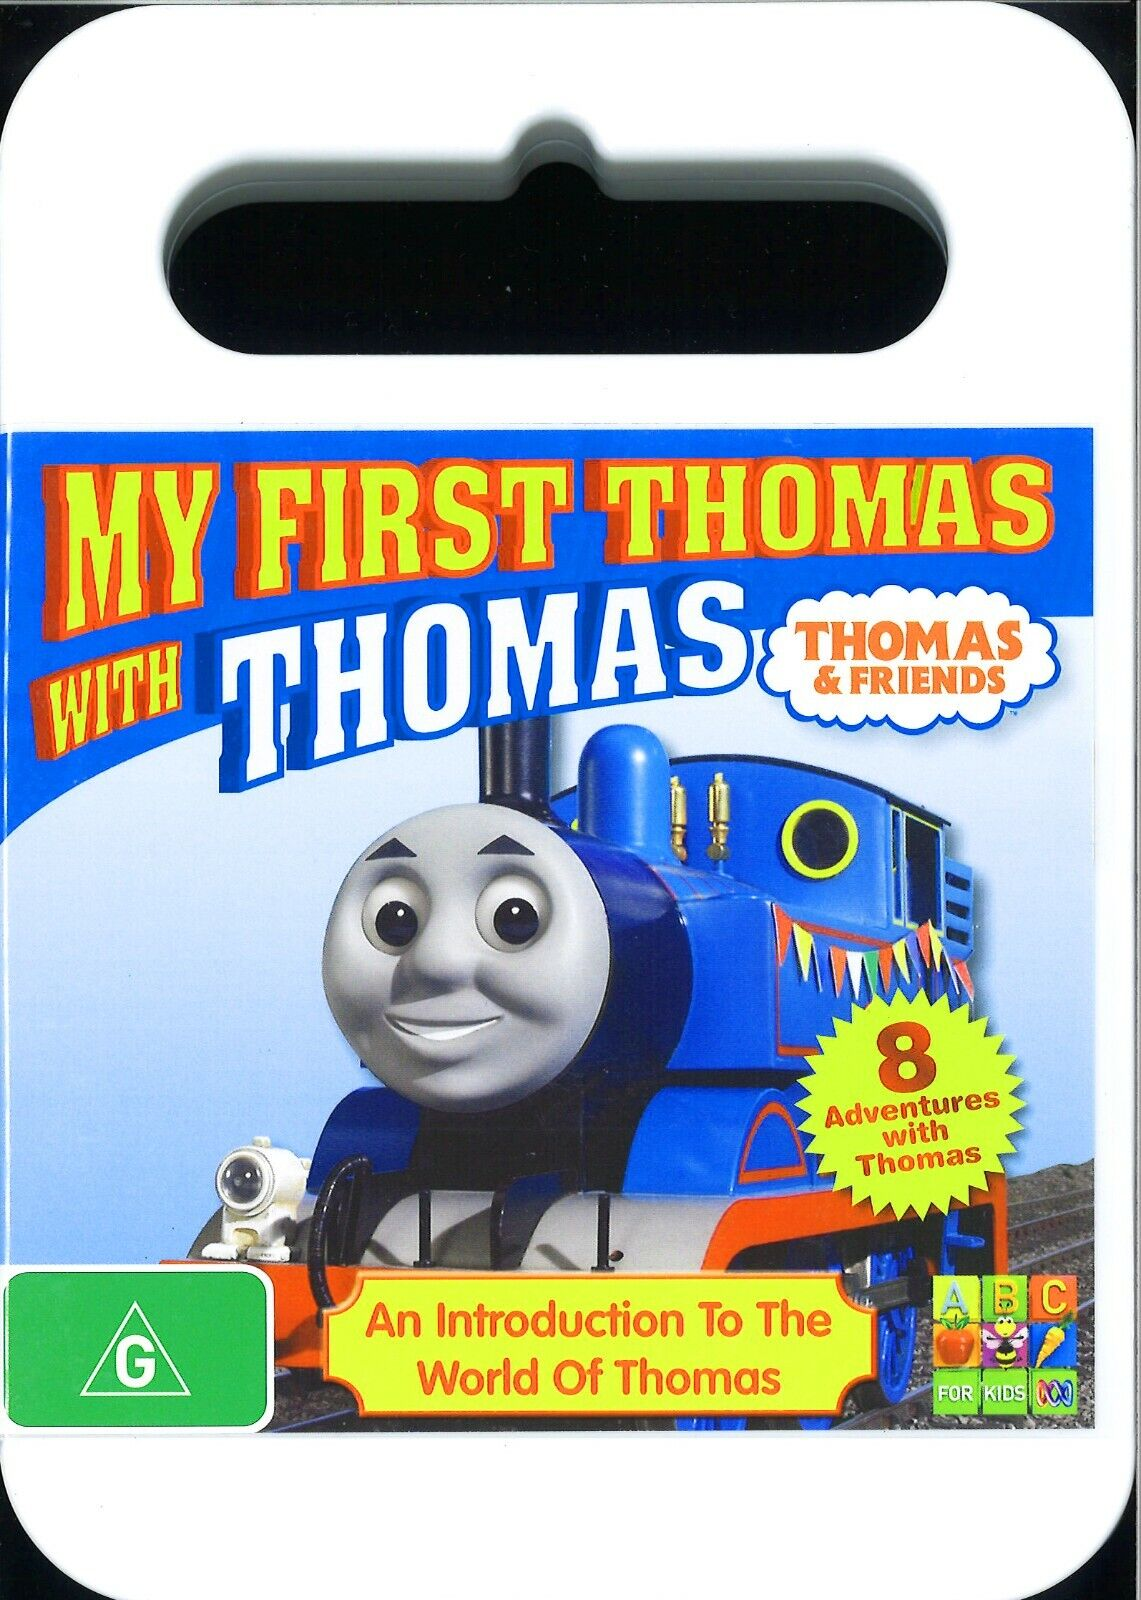 My First Thomas with Thomas